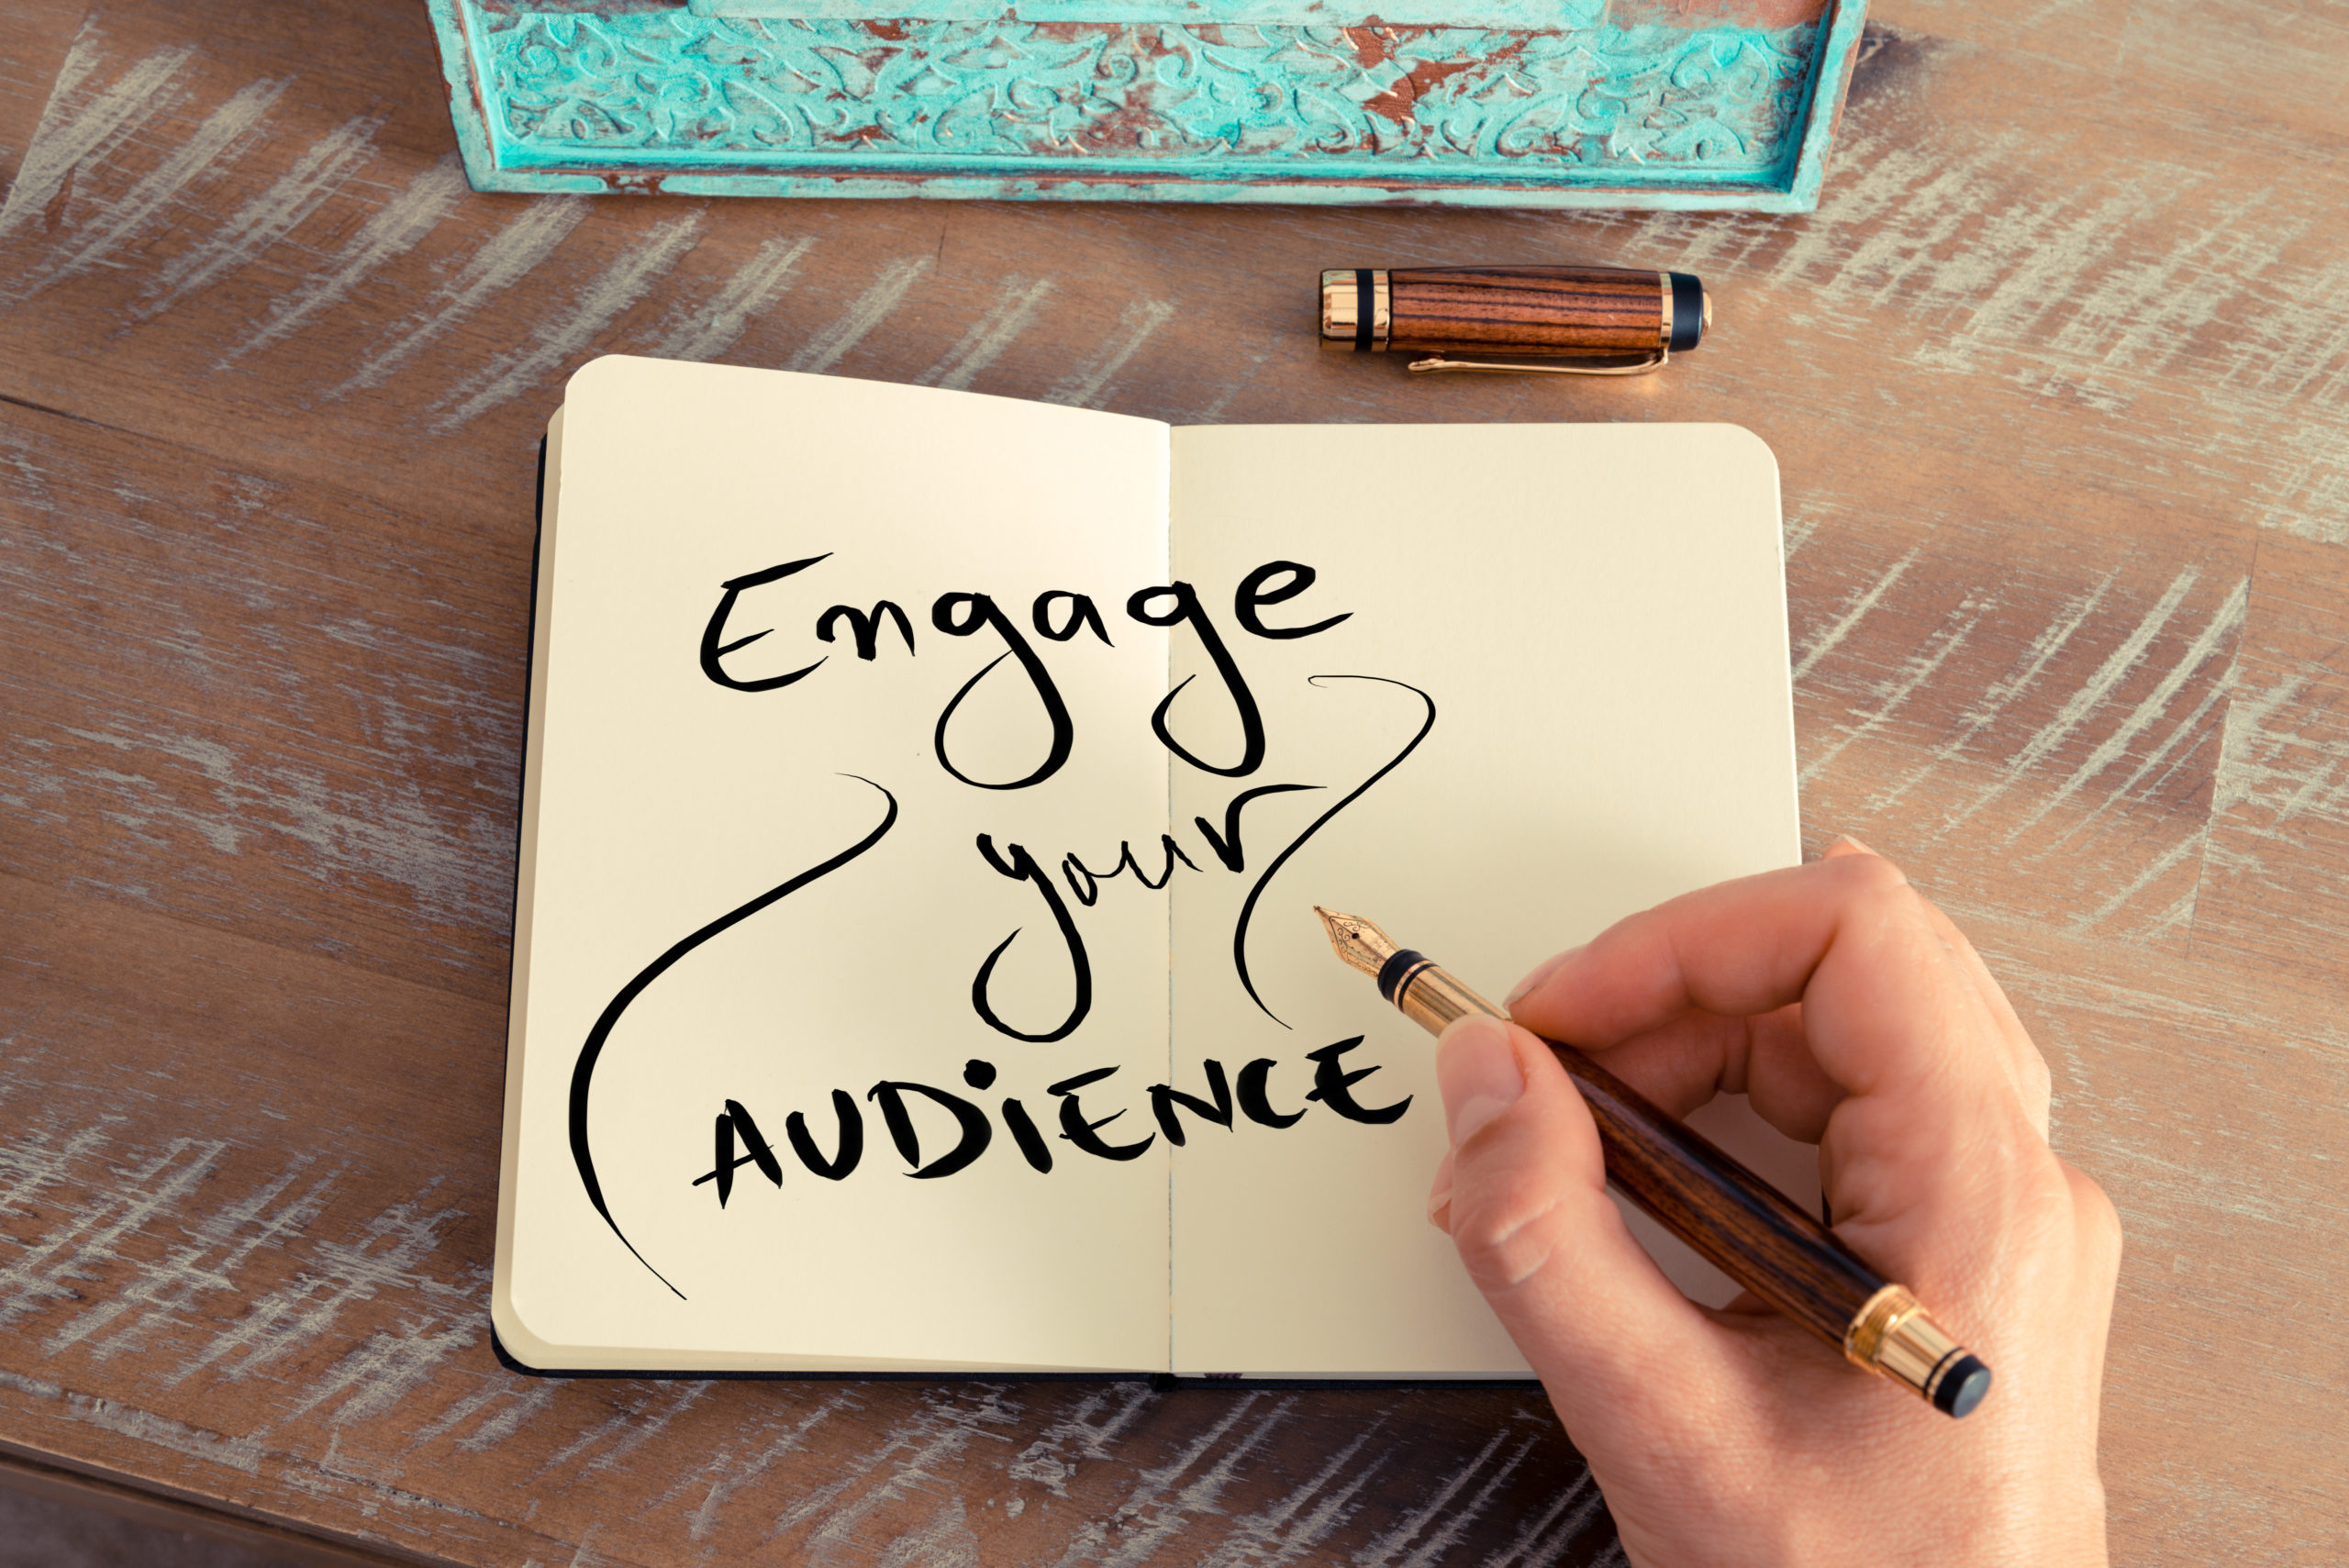 How brands must engage with audiences in 2019